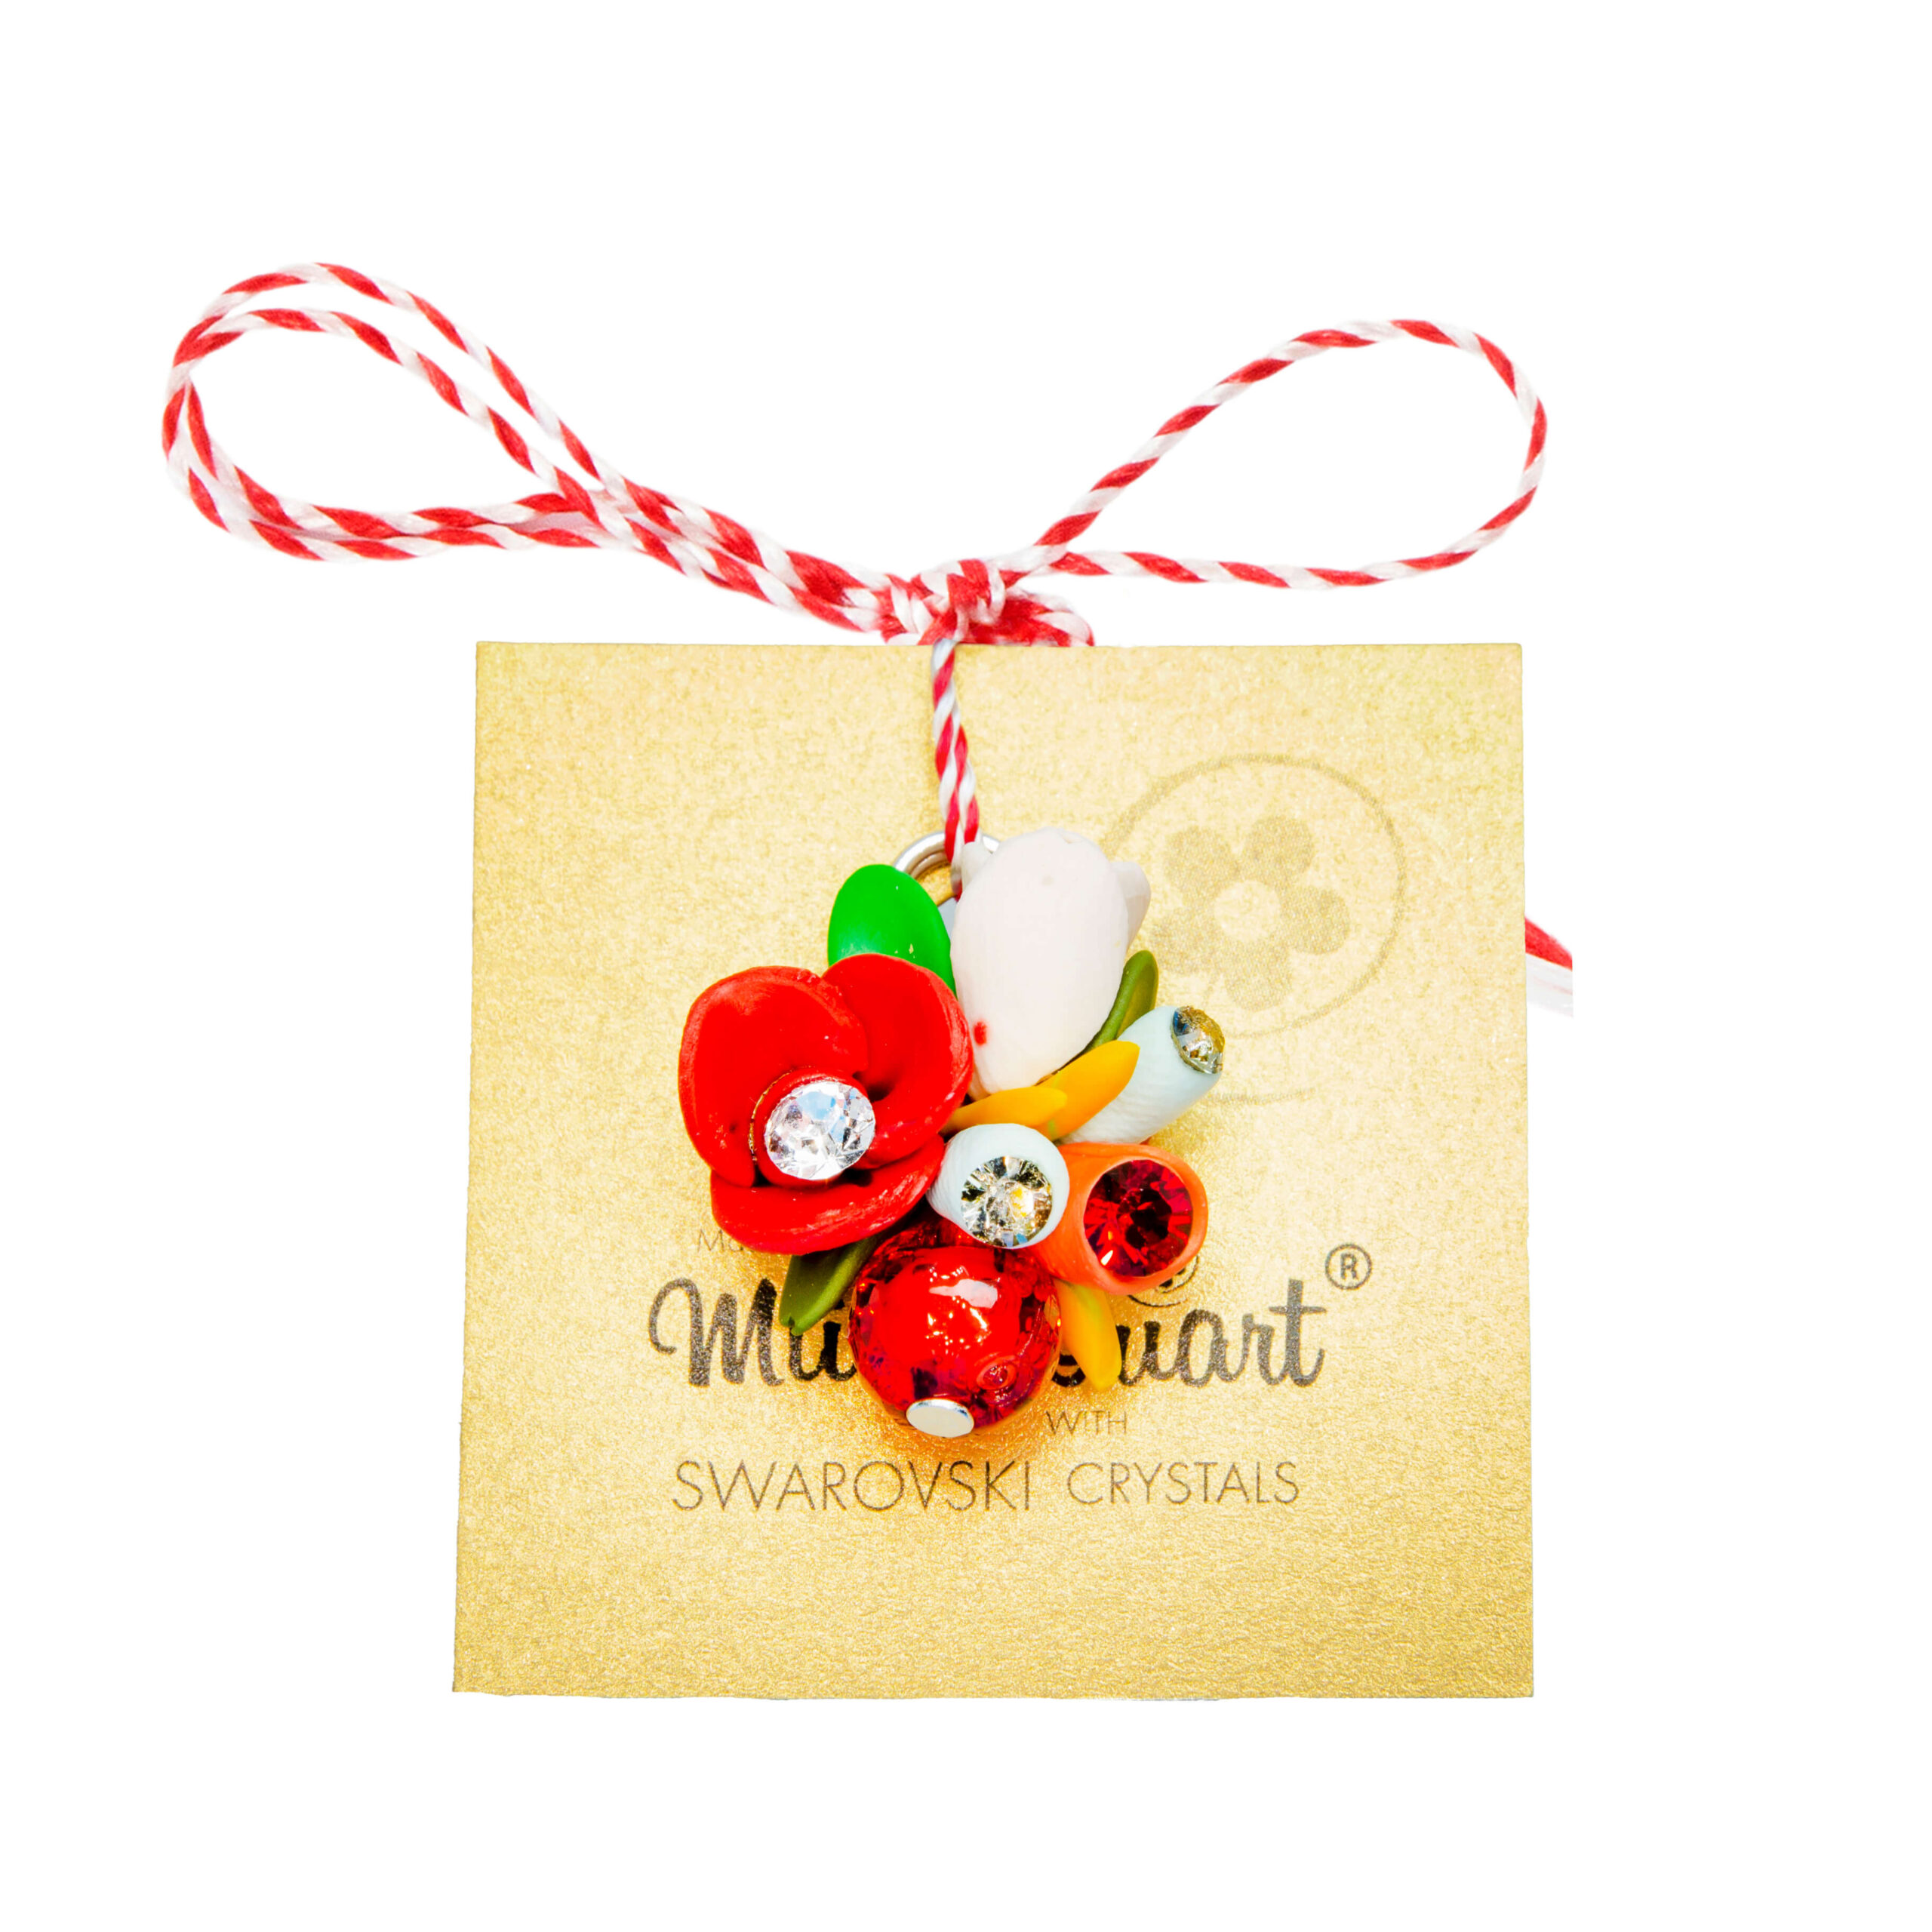 Martisor, Miidefloriart, model 27